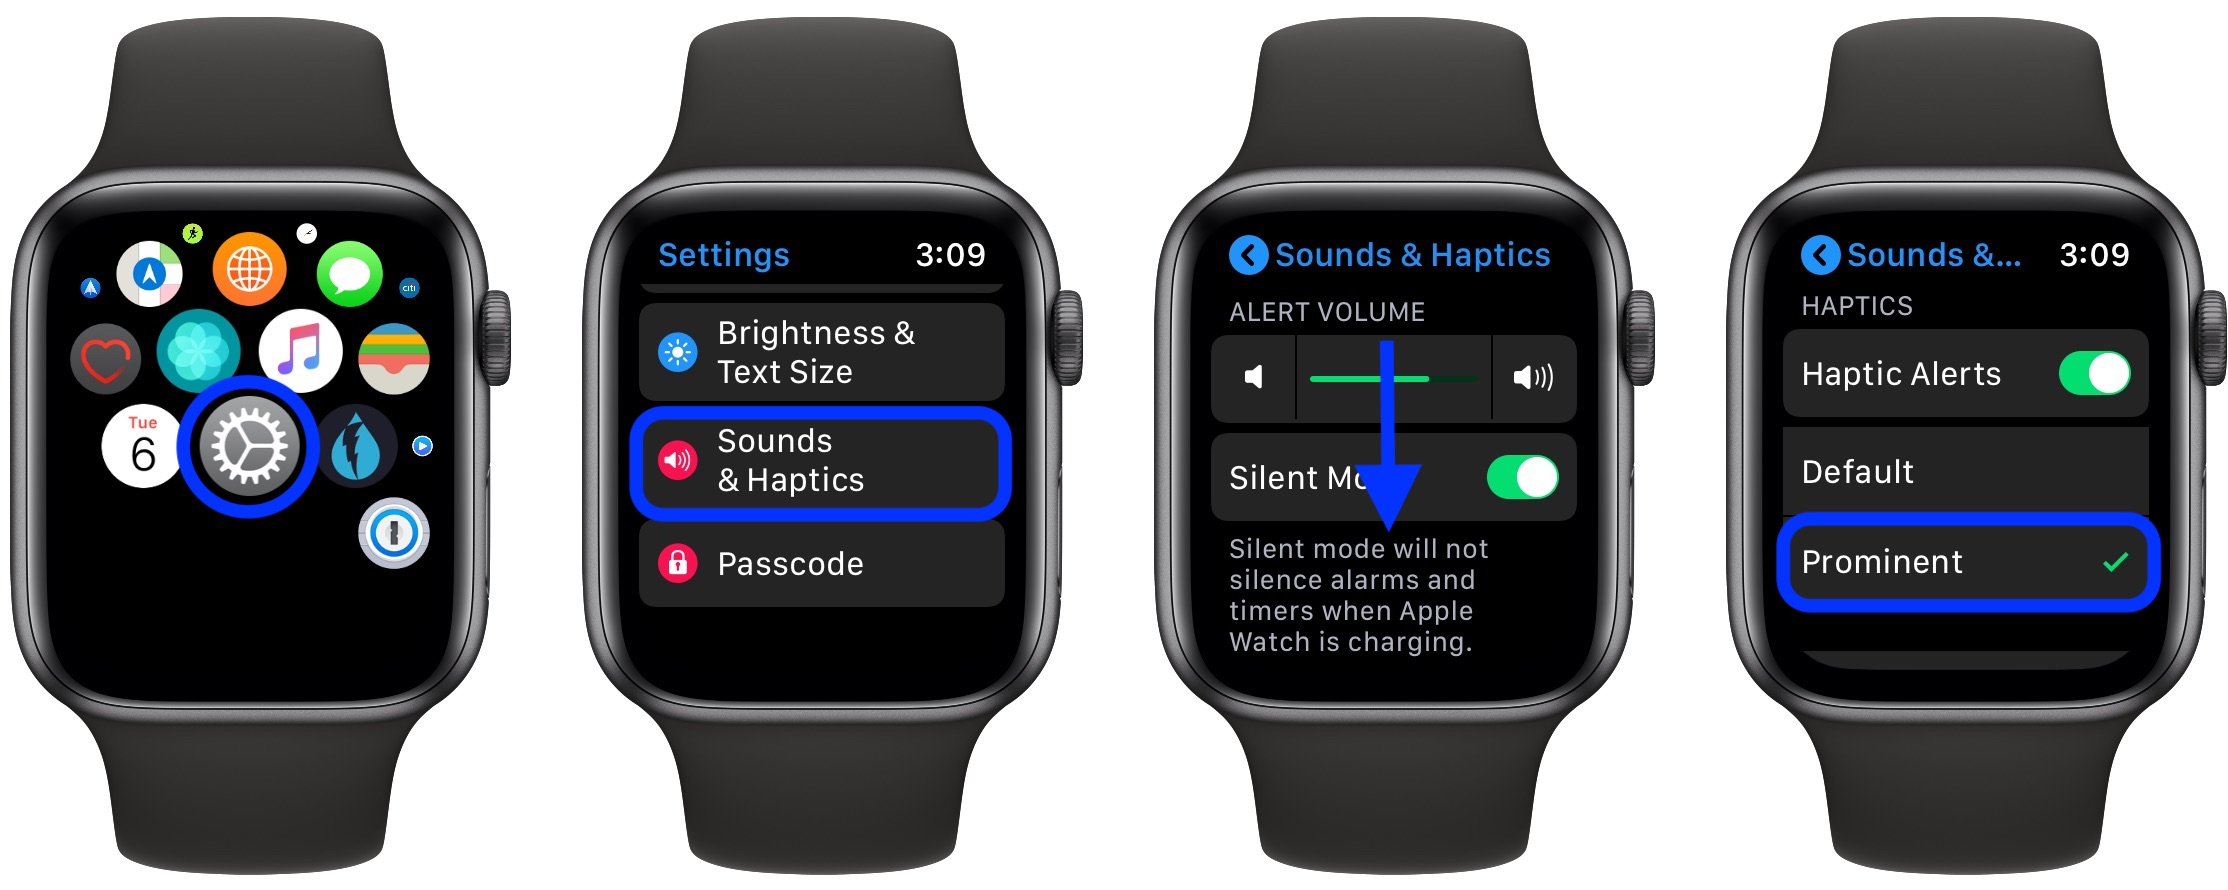 How to turn up haptic vibration feedback on Apple Watch